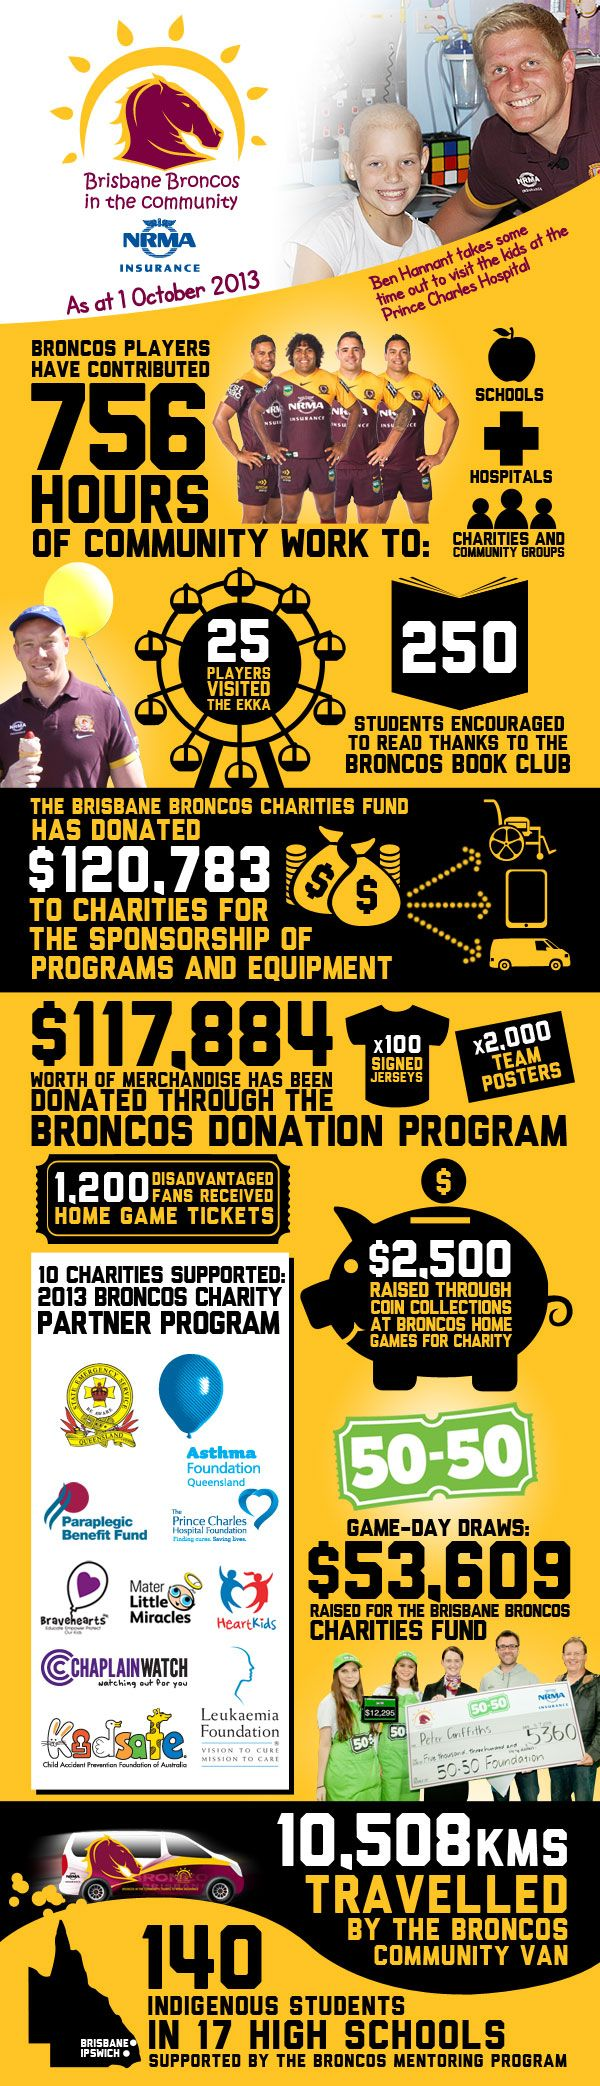 Season 2013 - Brisbane Broncos In The Community. Rugby players giving back. Infographic